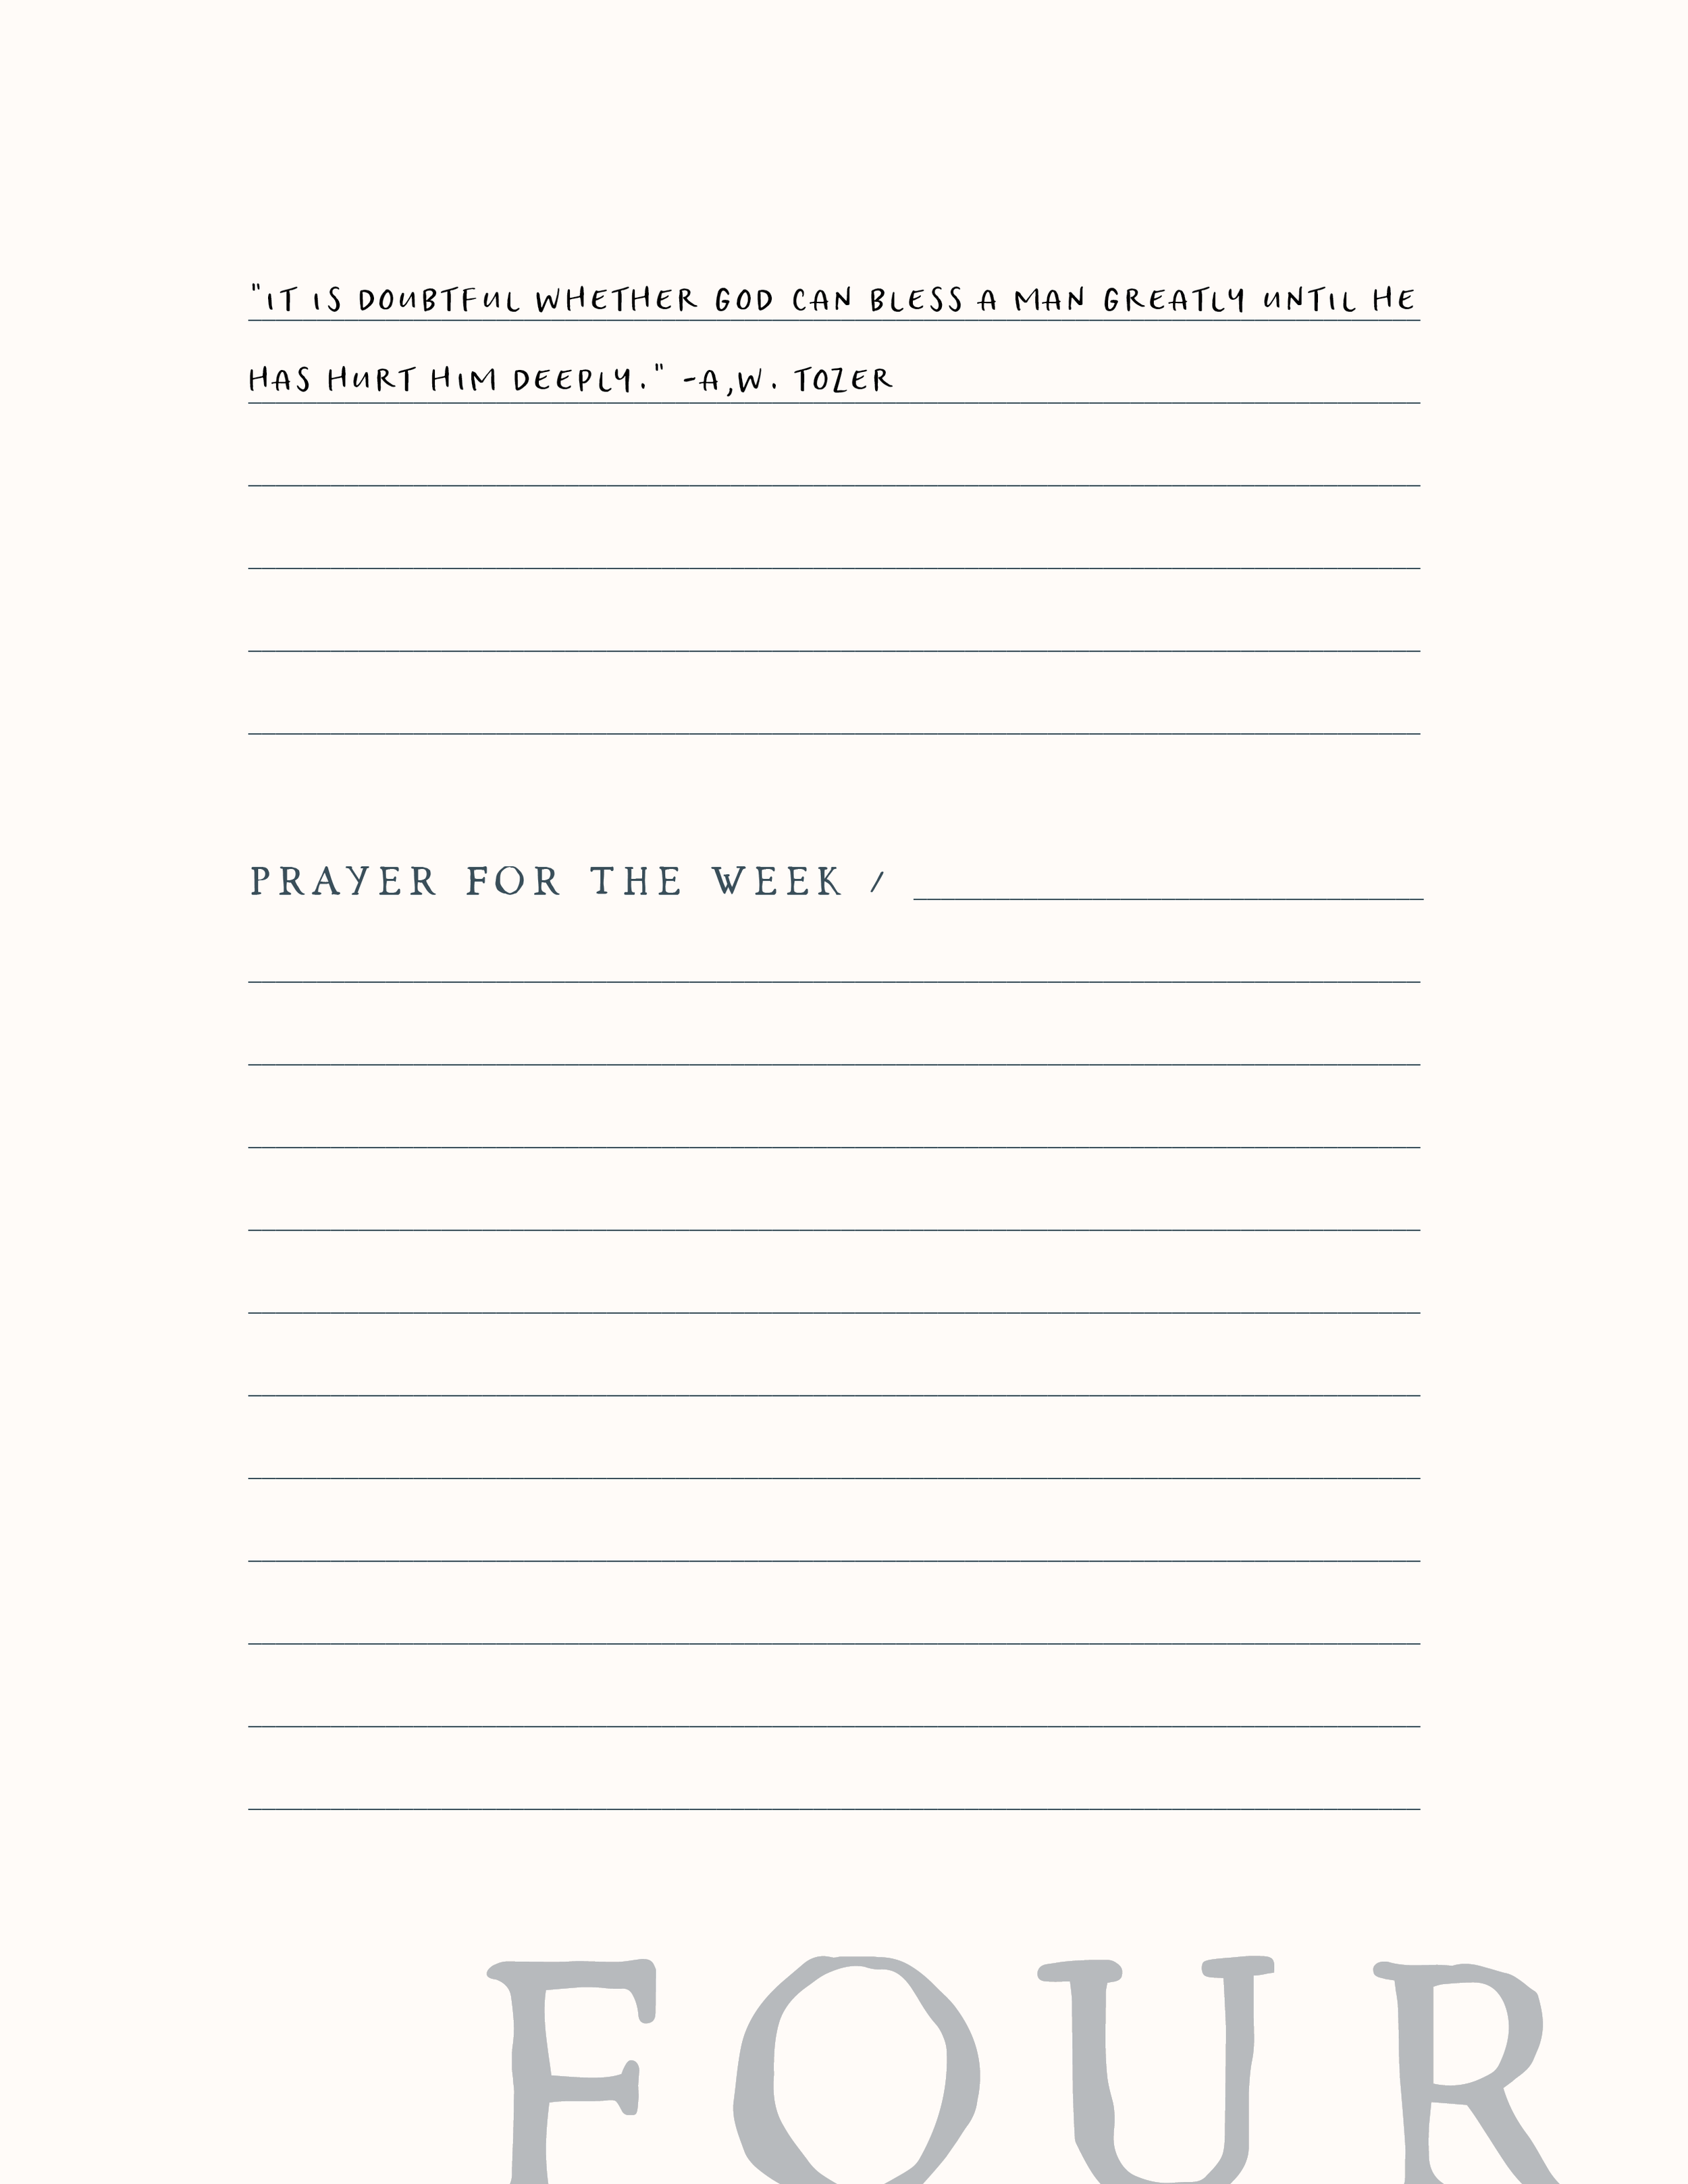 weekfour_notes2.png